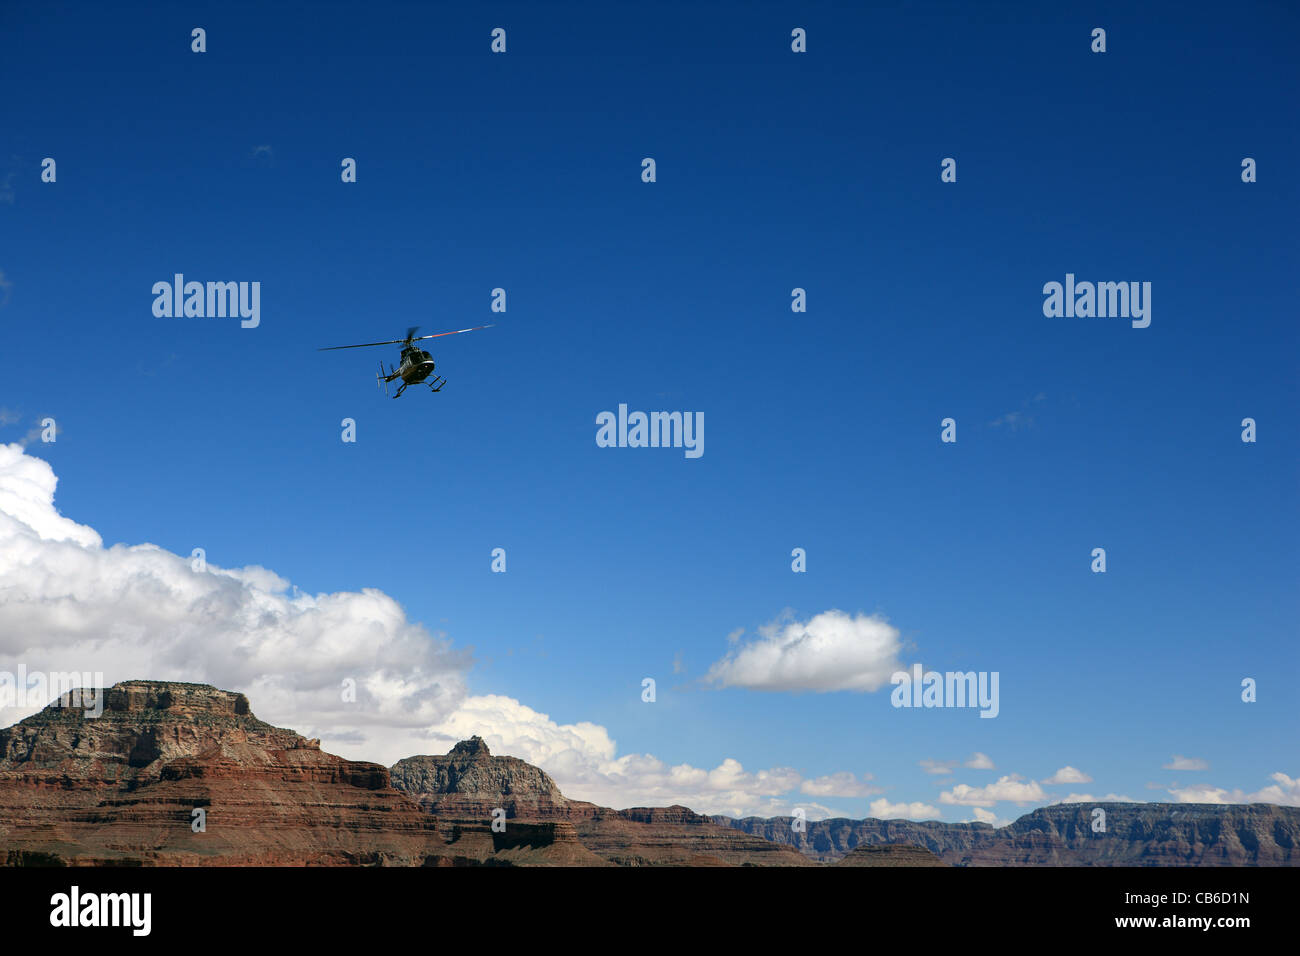 Helicopter tour over the Grand Canyon in Arizona USA - Stock Image